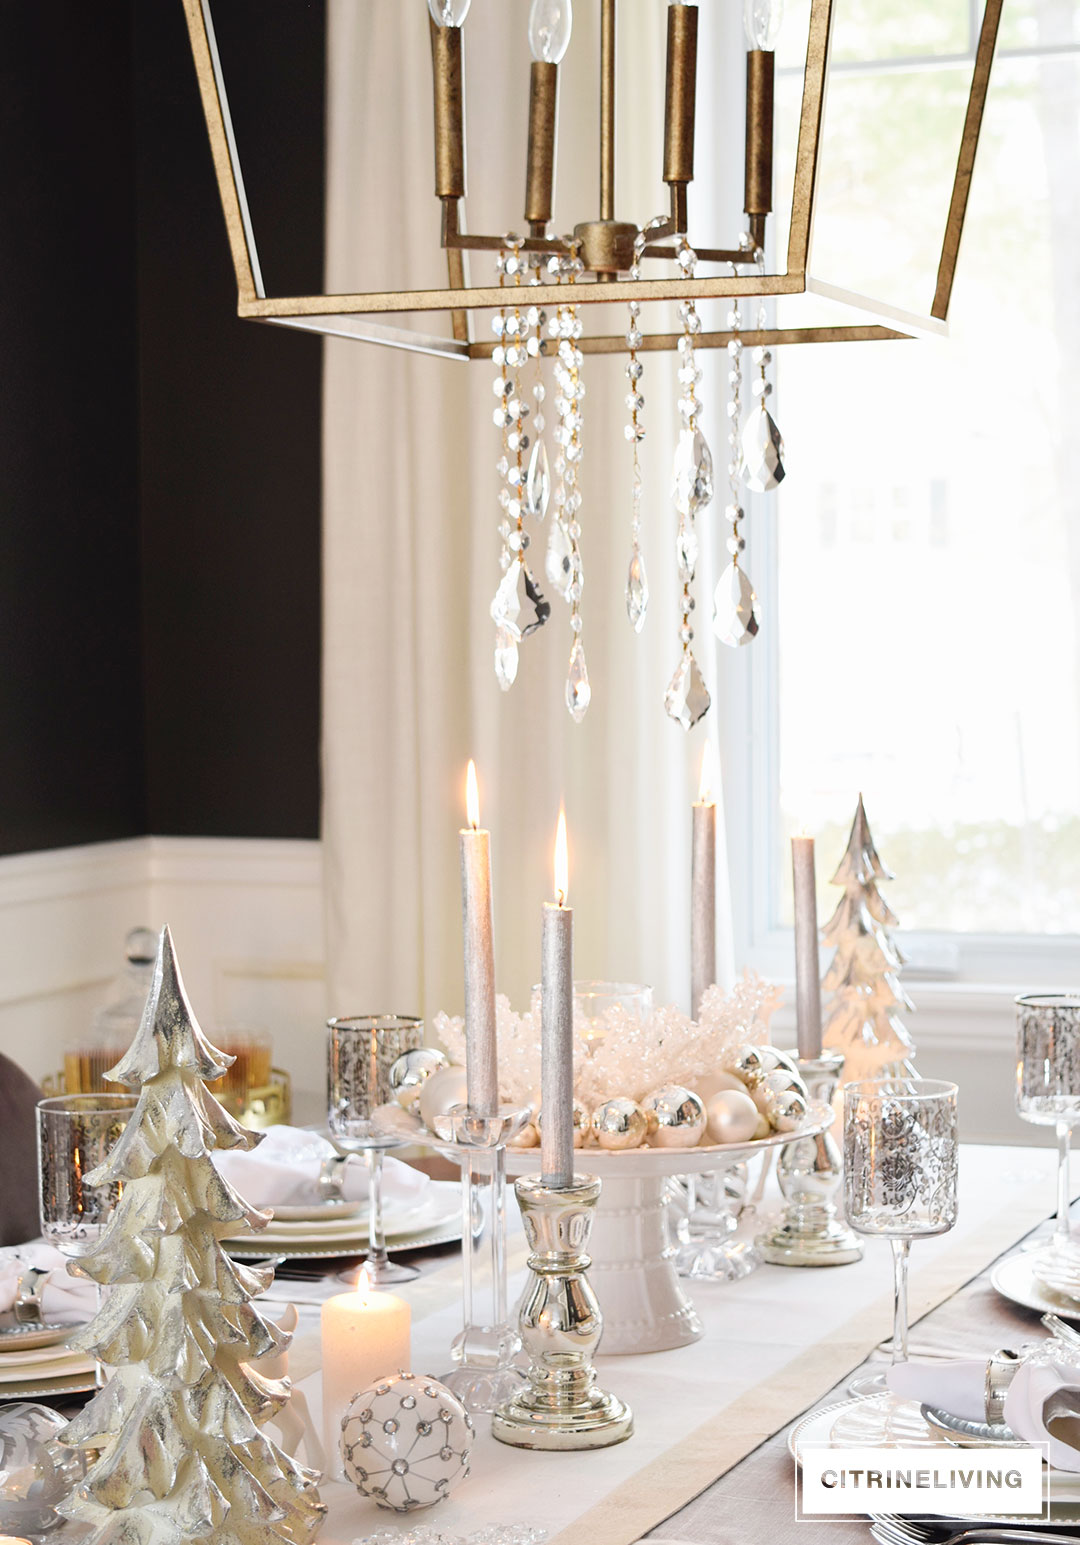 Adding crystals to a modern, lantern style pendant brings chic glam to any space.